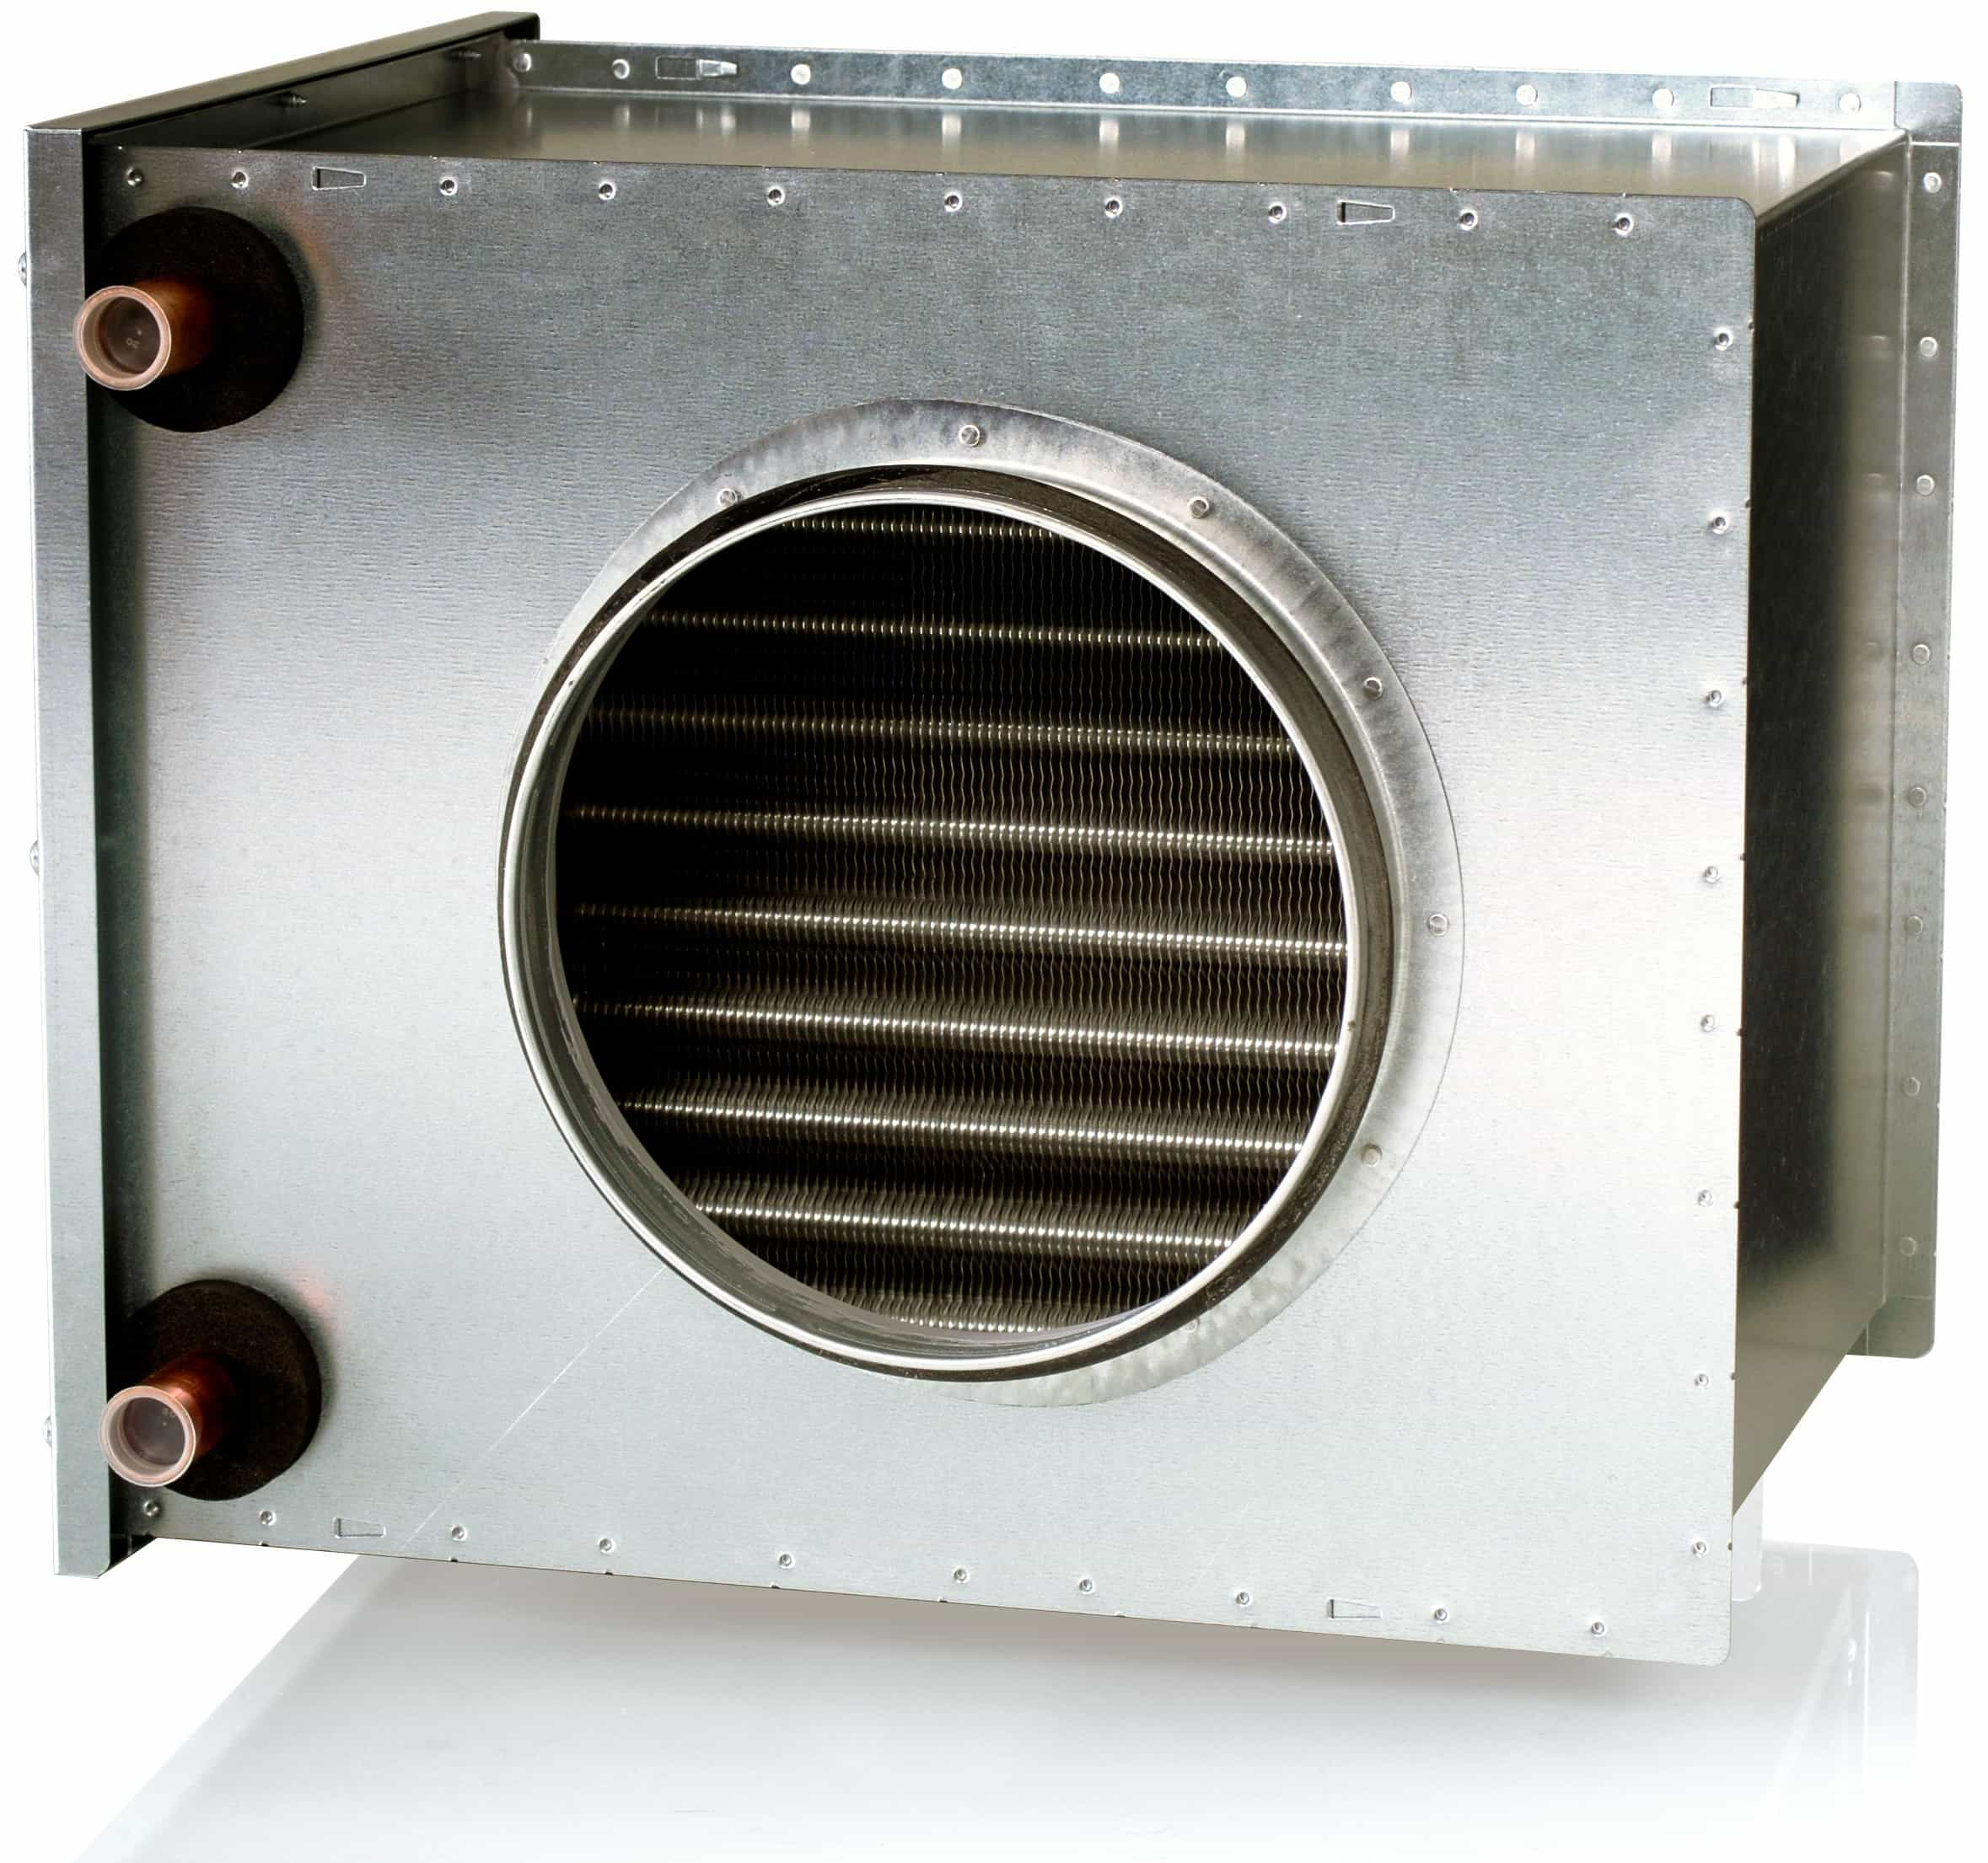 Imofa - supply air heater CWW3 for MVHR system